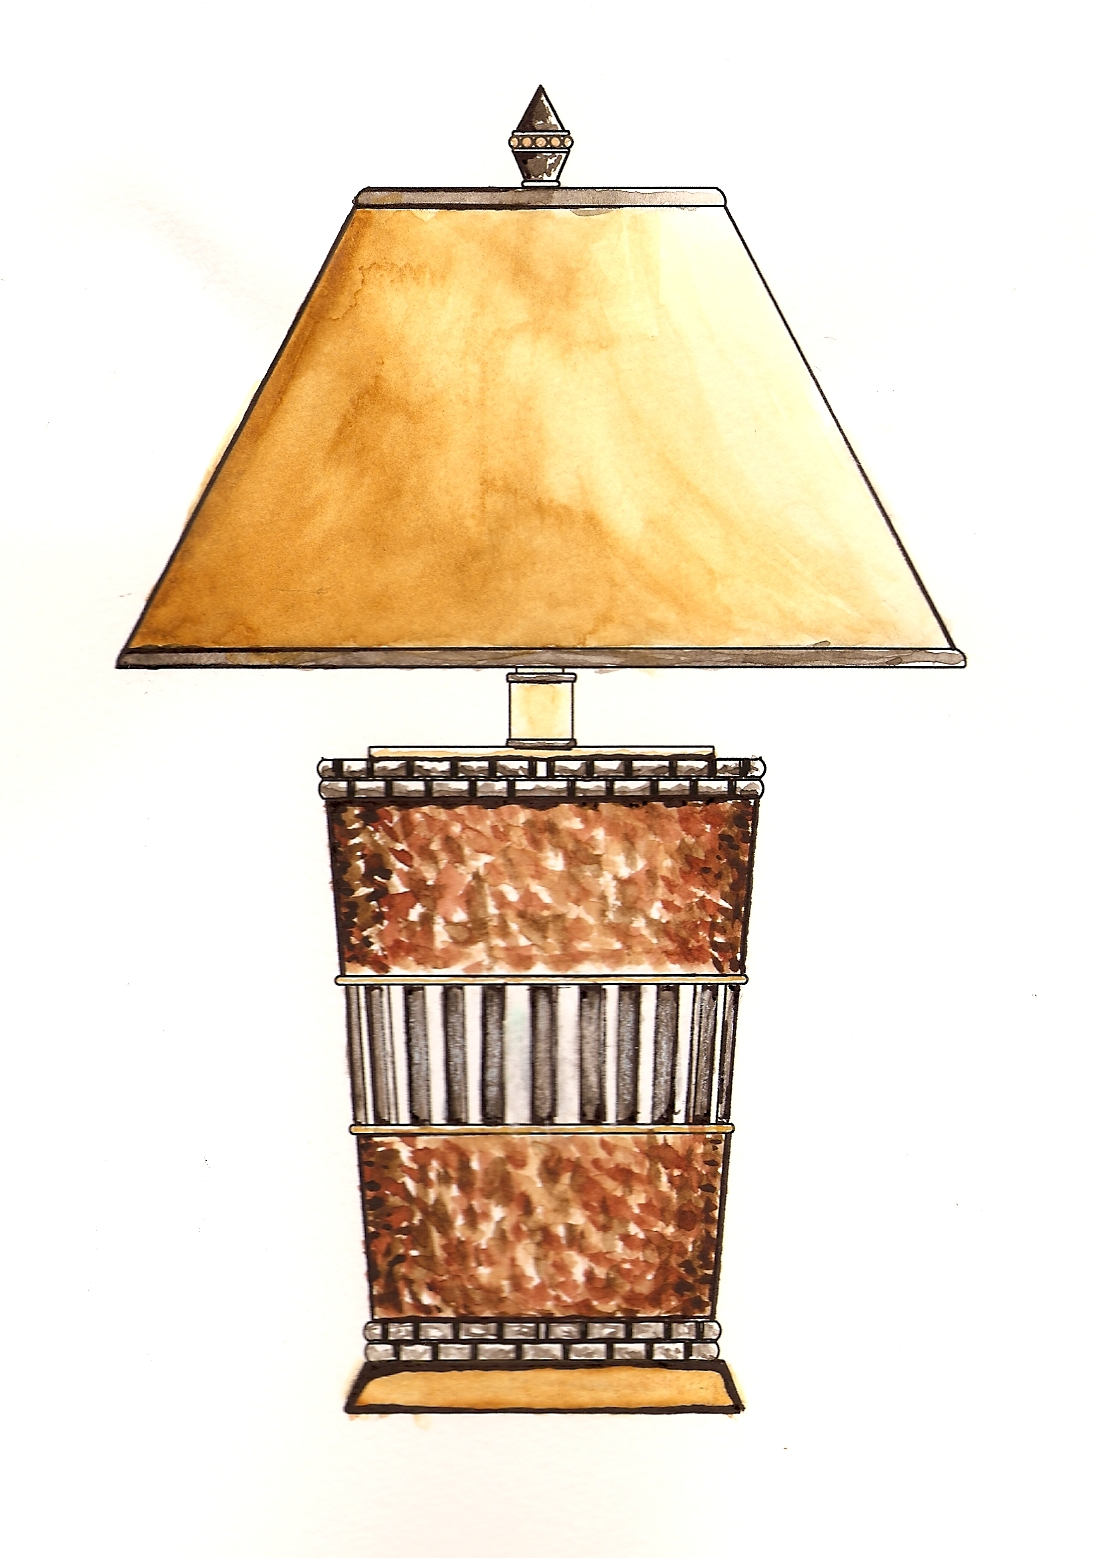 Table lamp for drawing - Table Lamp Water Color Concept Drawing